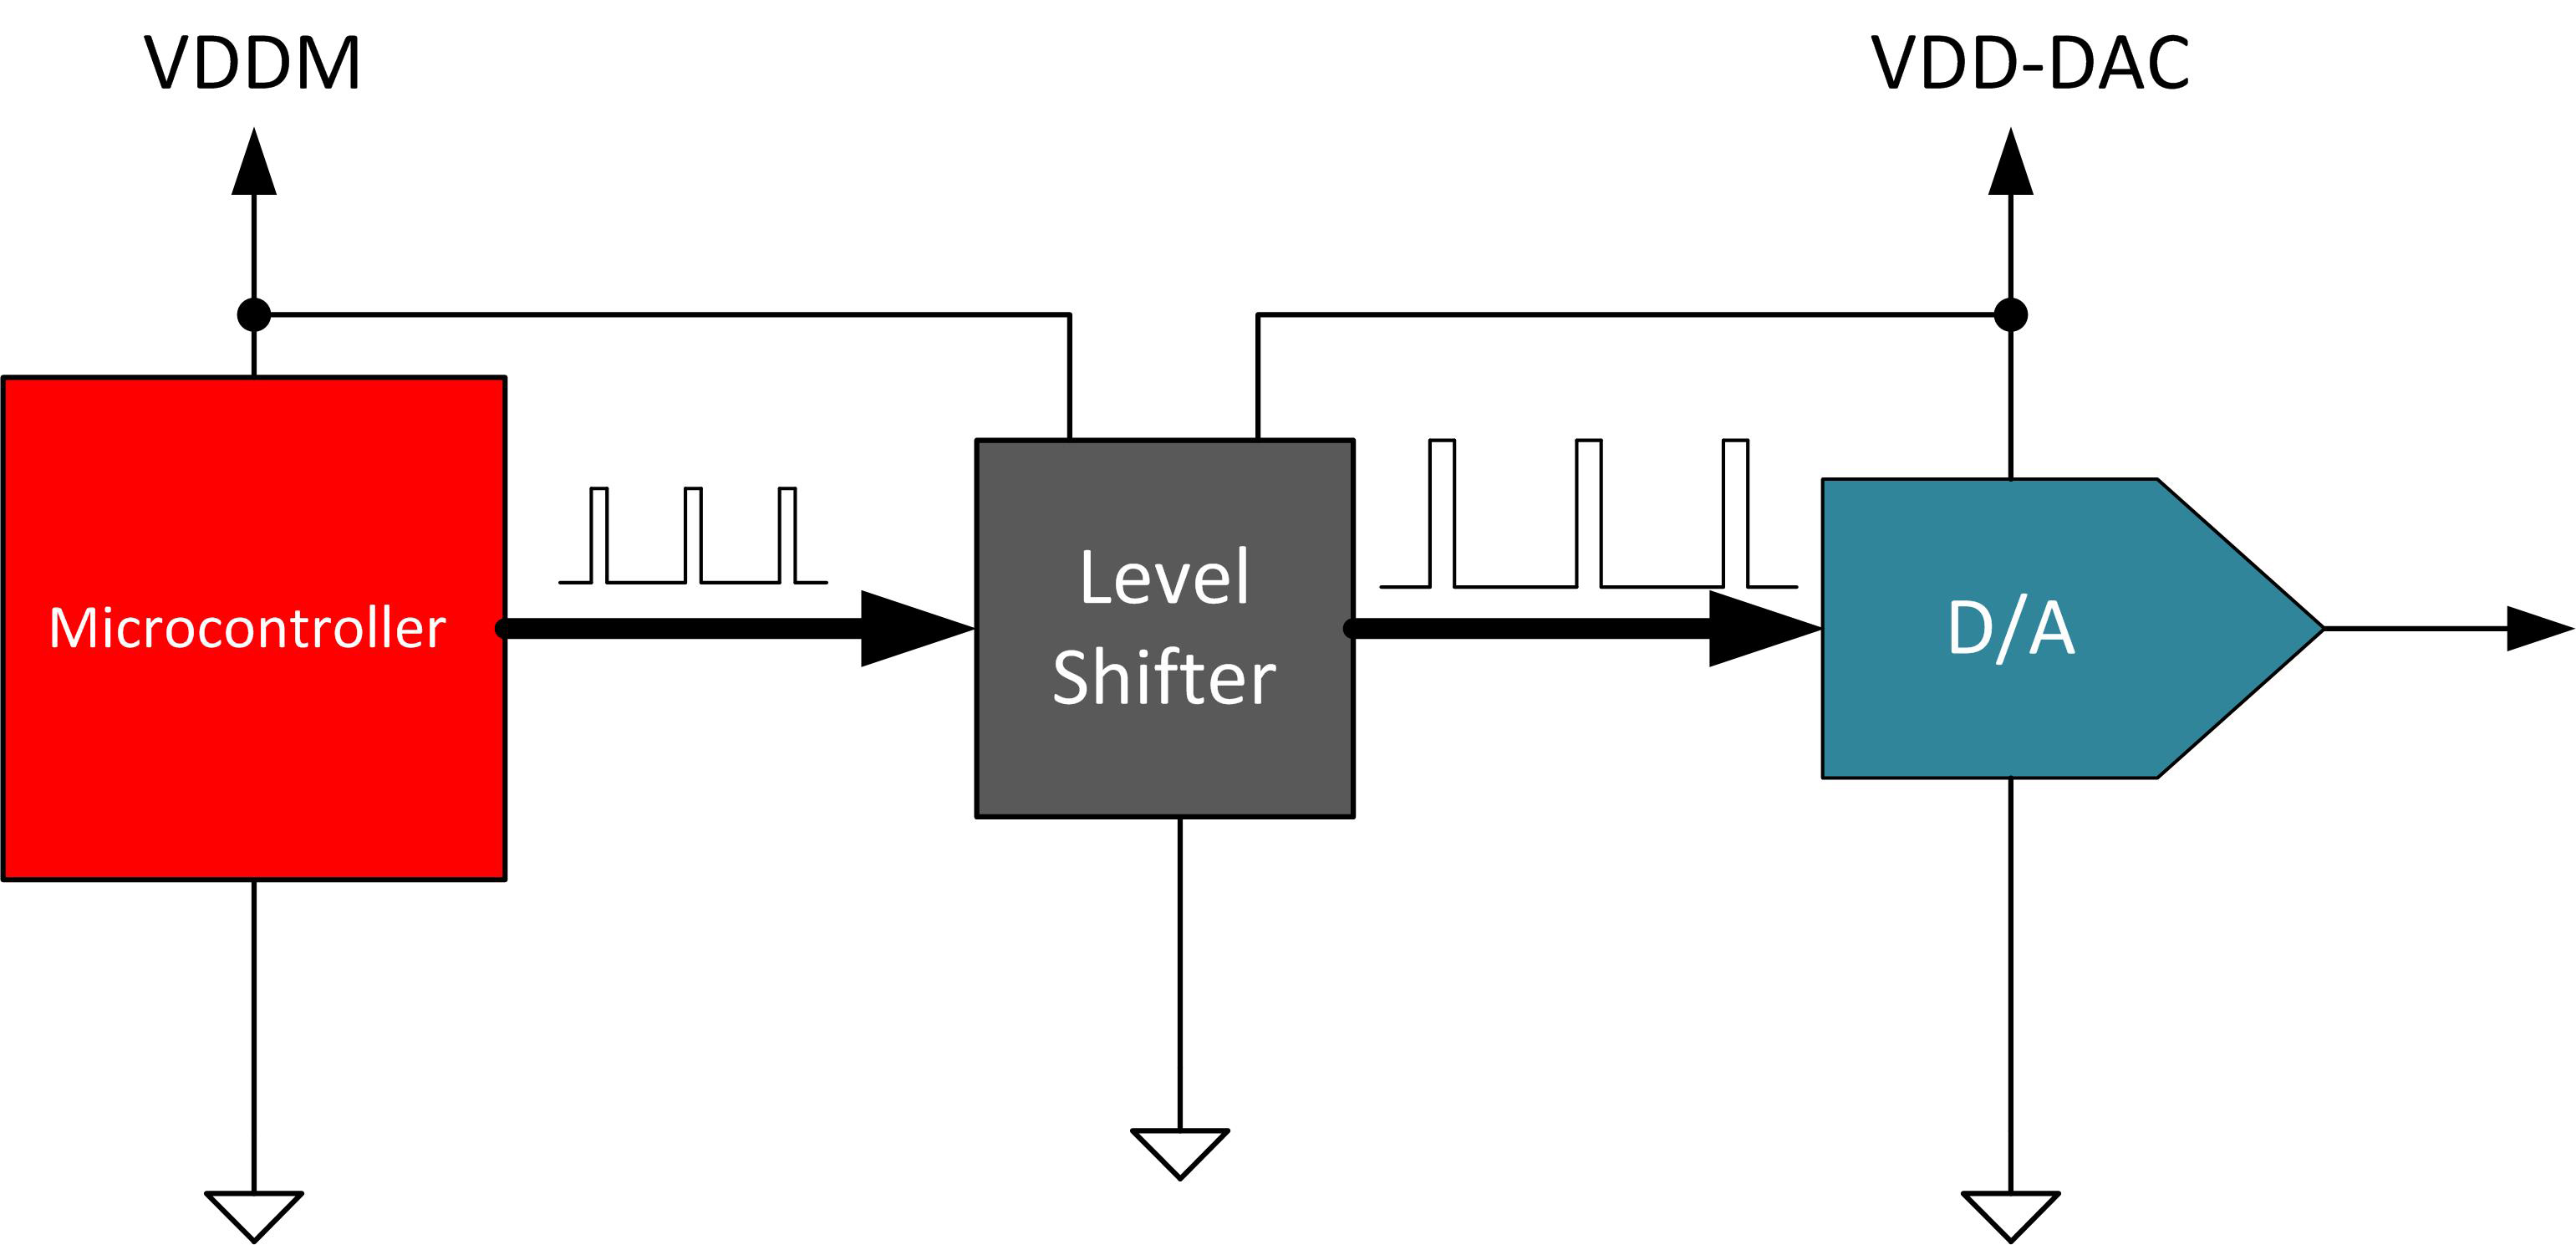 [Figure 3 | Using a level shifter to interface 5 V DAC with 3.3 V microcontroller]